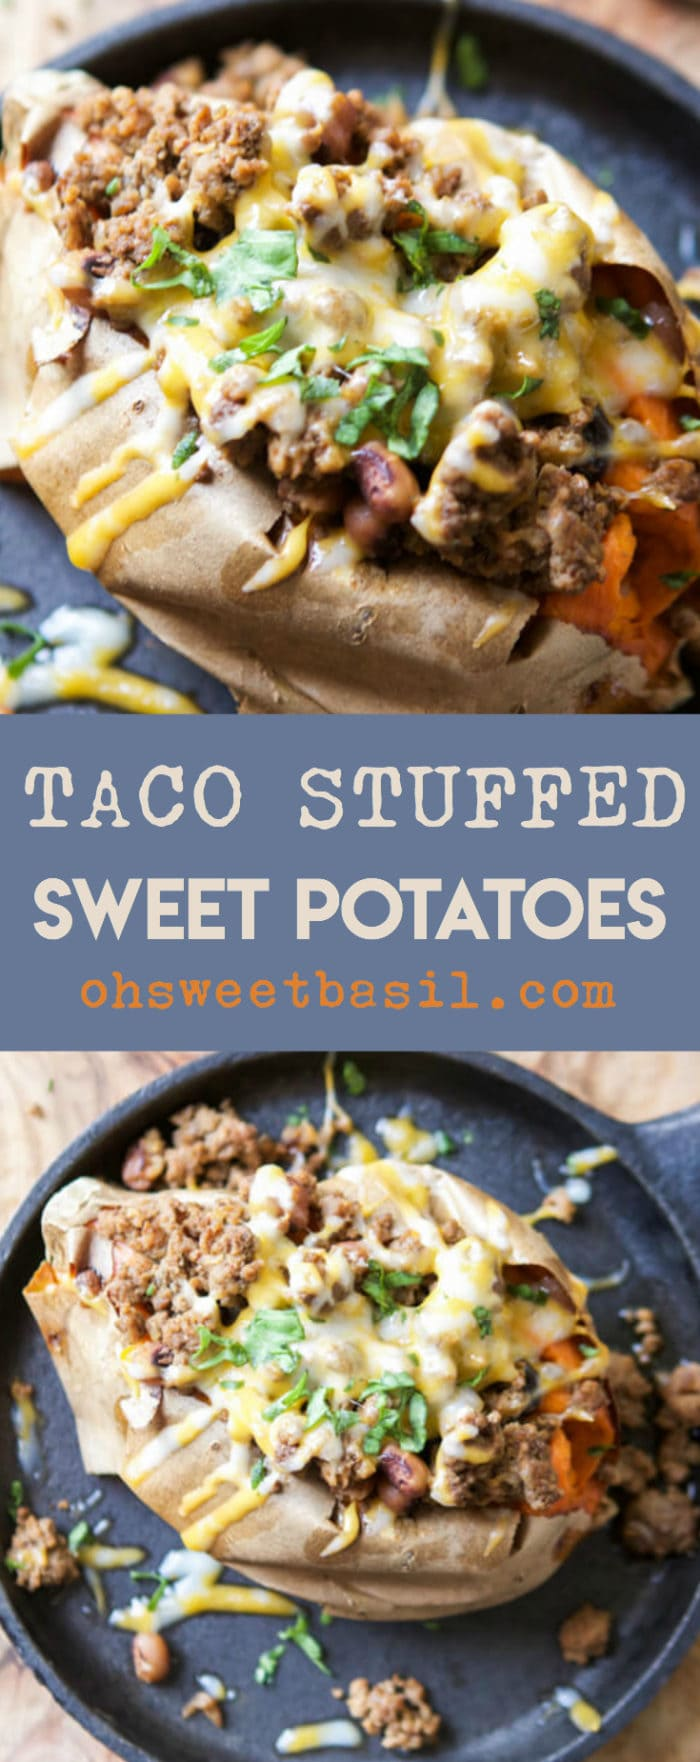 We love food, but we have to have balance and healthy dinners are essential. If you're looking for a healthy dinner idea try taco stuffed sweet potatoes.